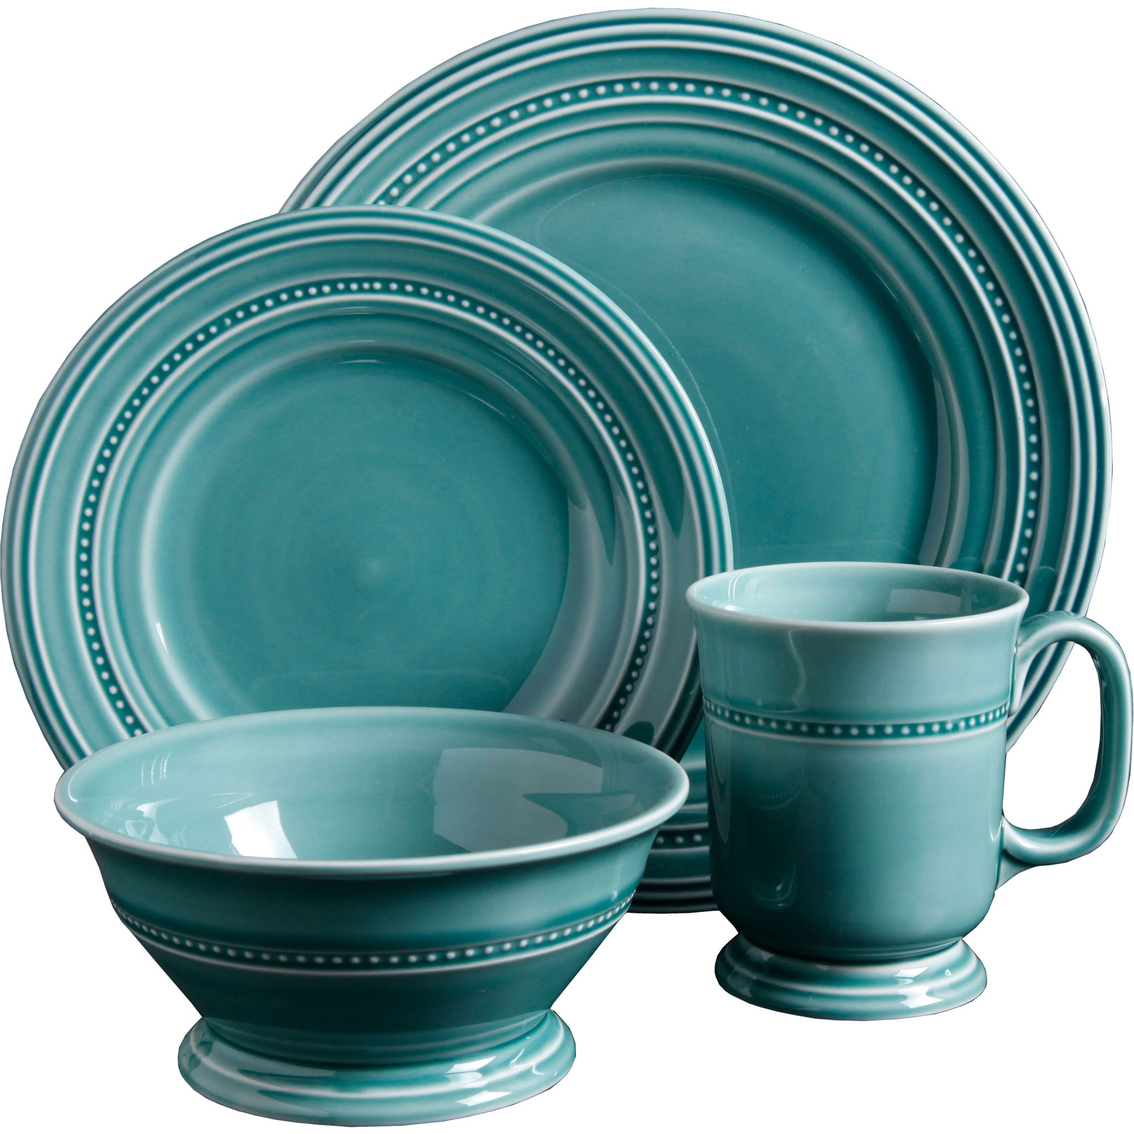 7318  sc 1 st  ShopMyExchange.com & Gibson Elite Barberware Turquoise 16 Pc. Dinnerware Set | Dinnerware ...